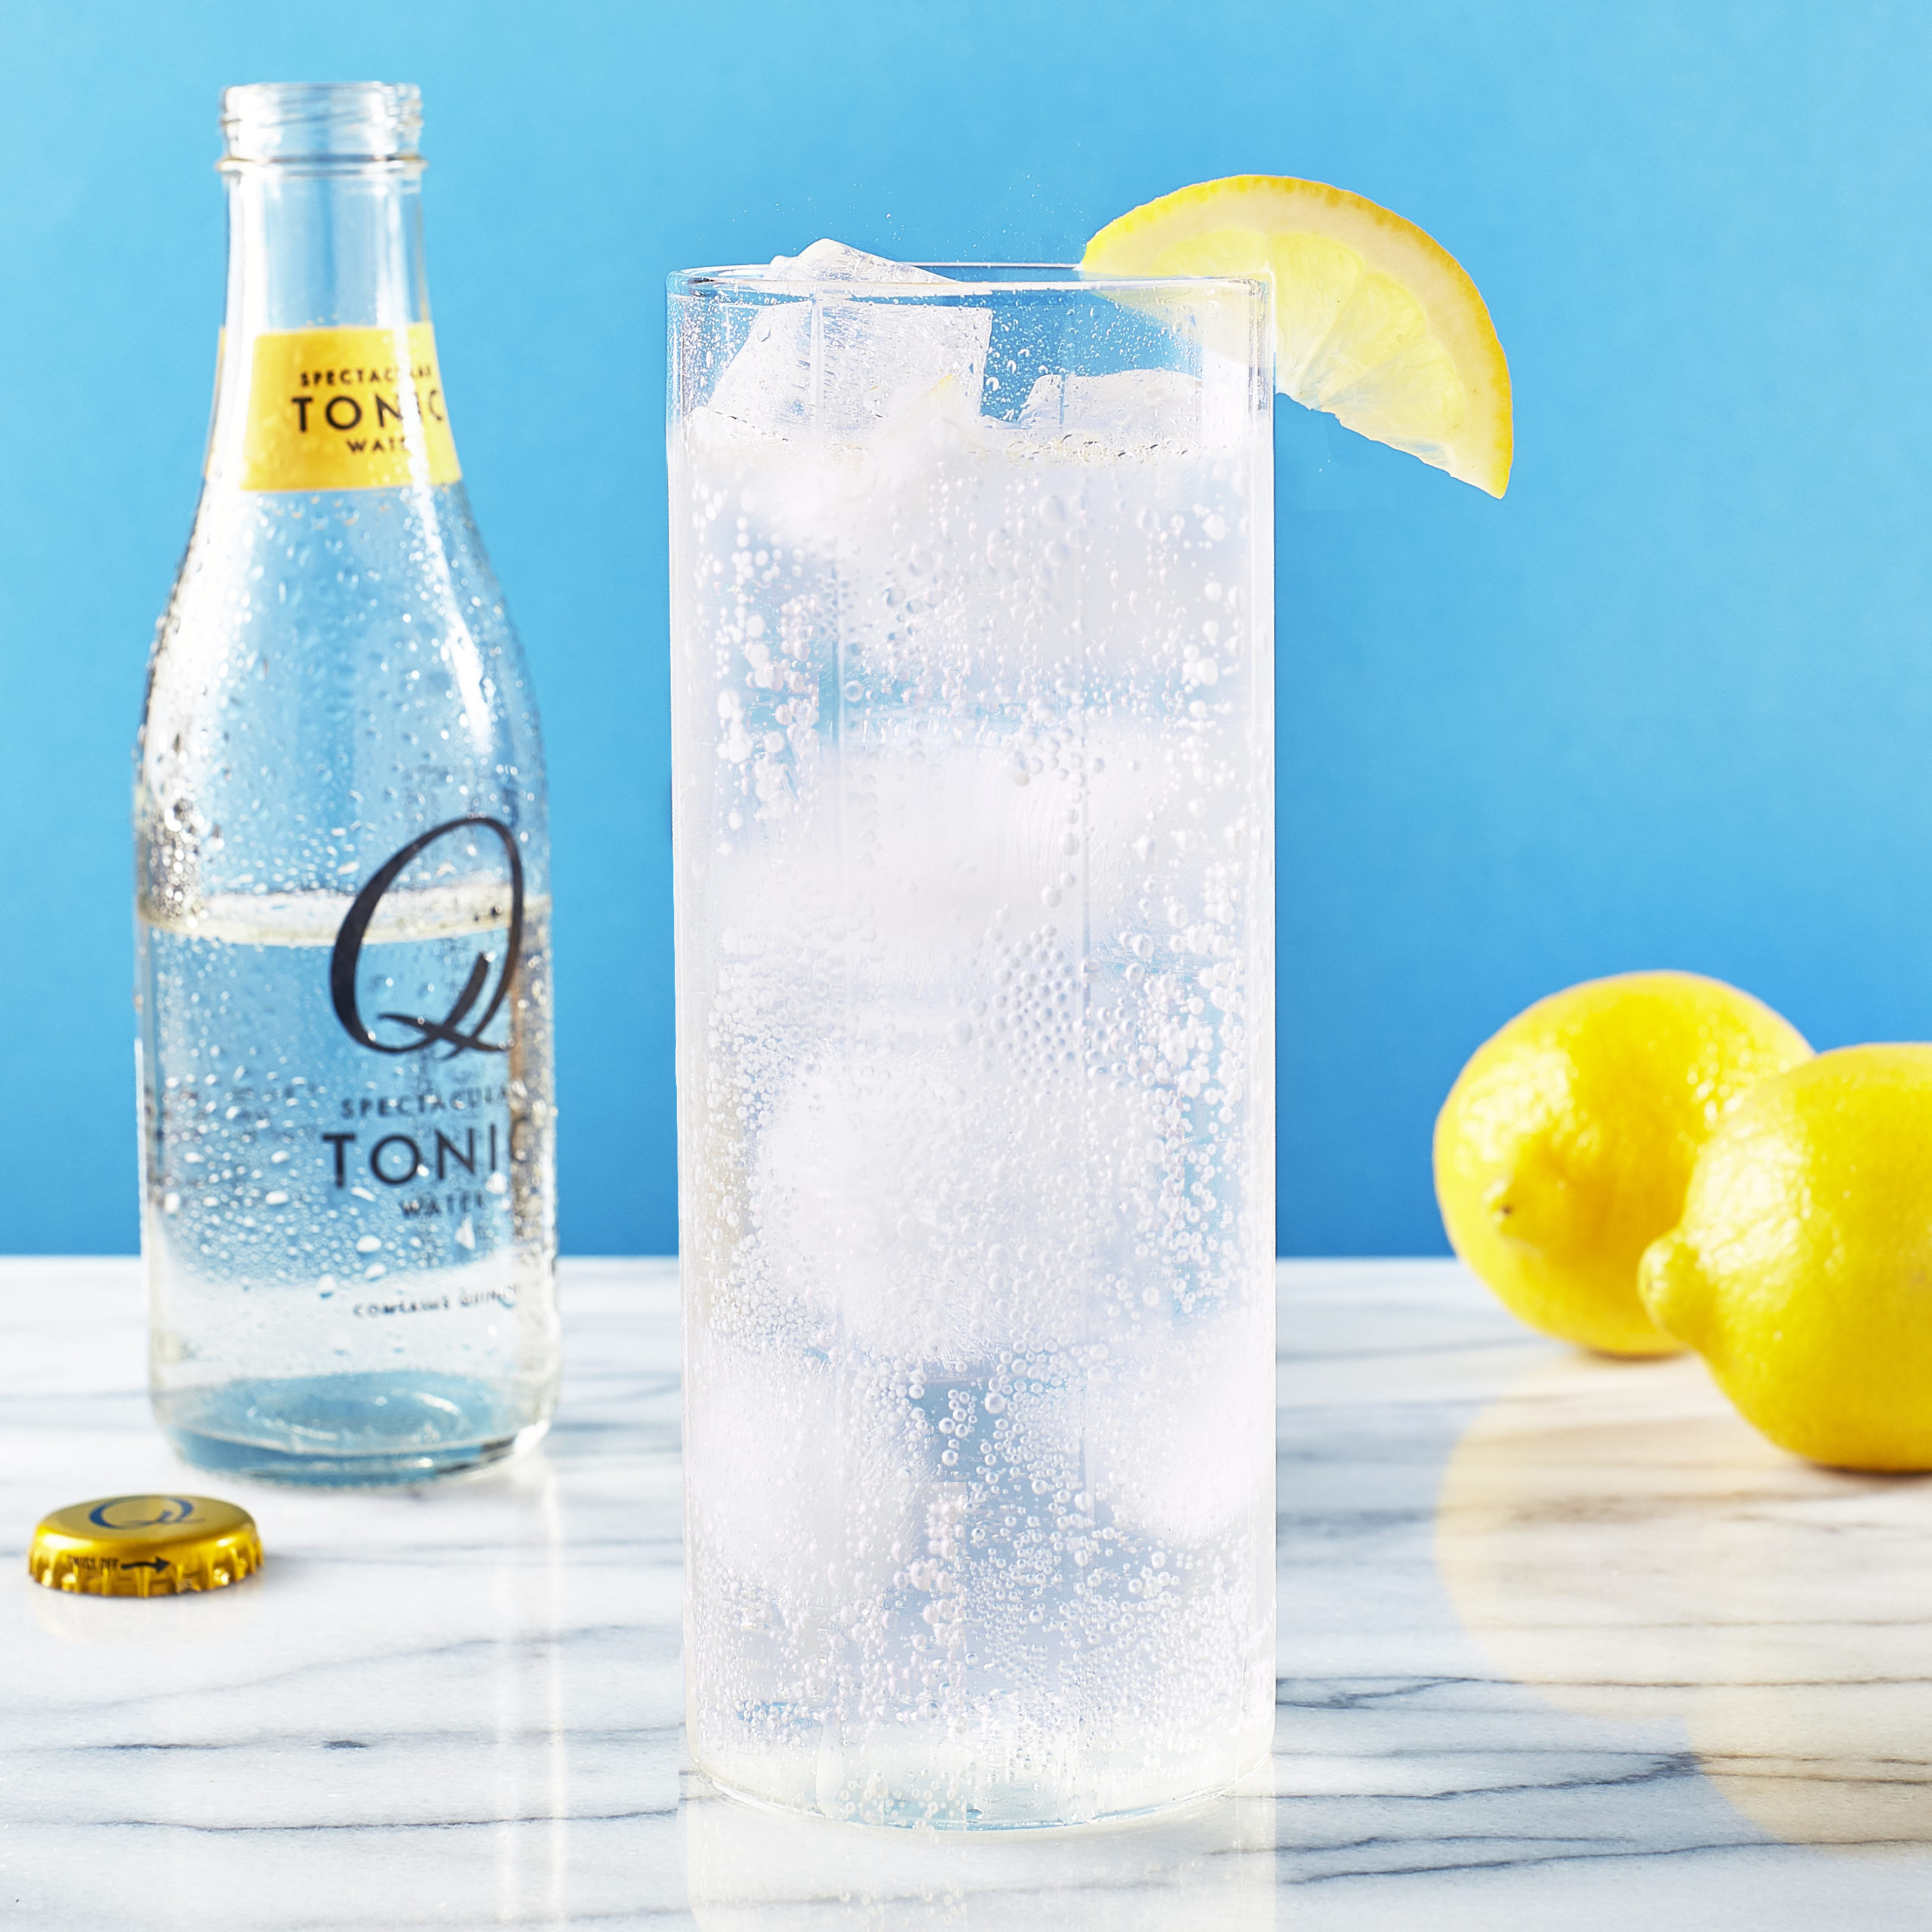 Spectacular Gin and Tonic